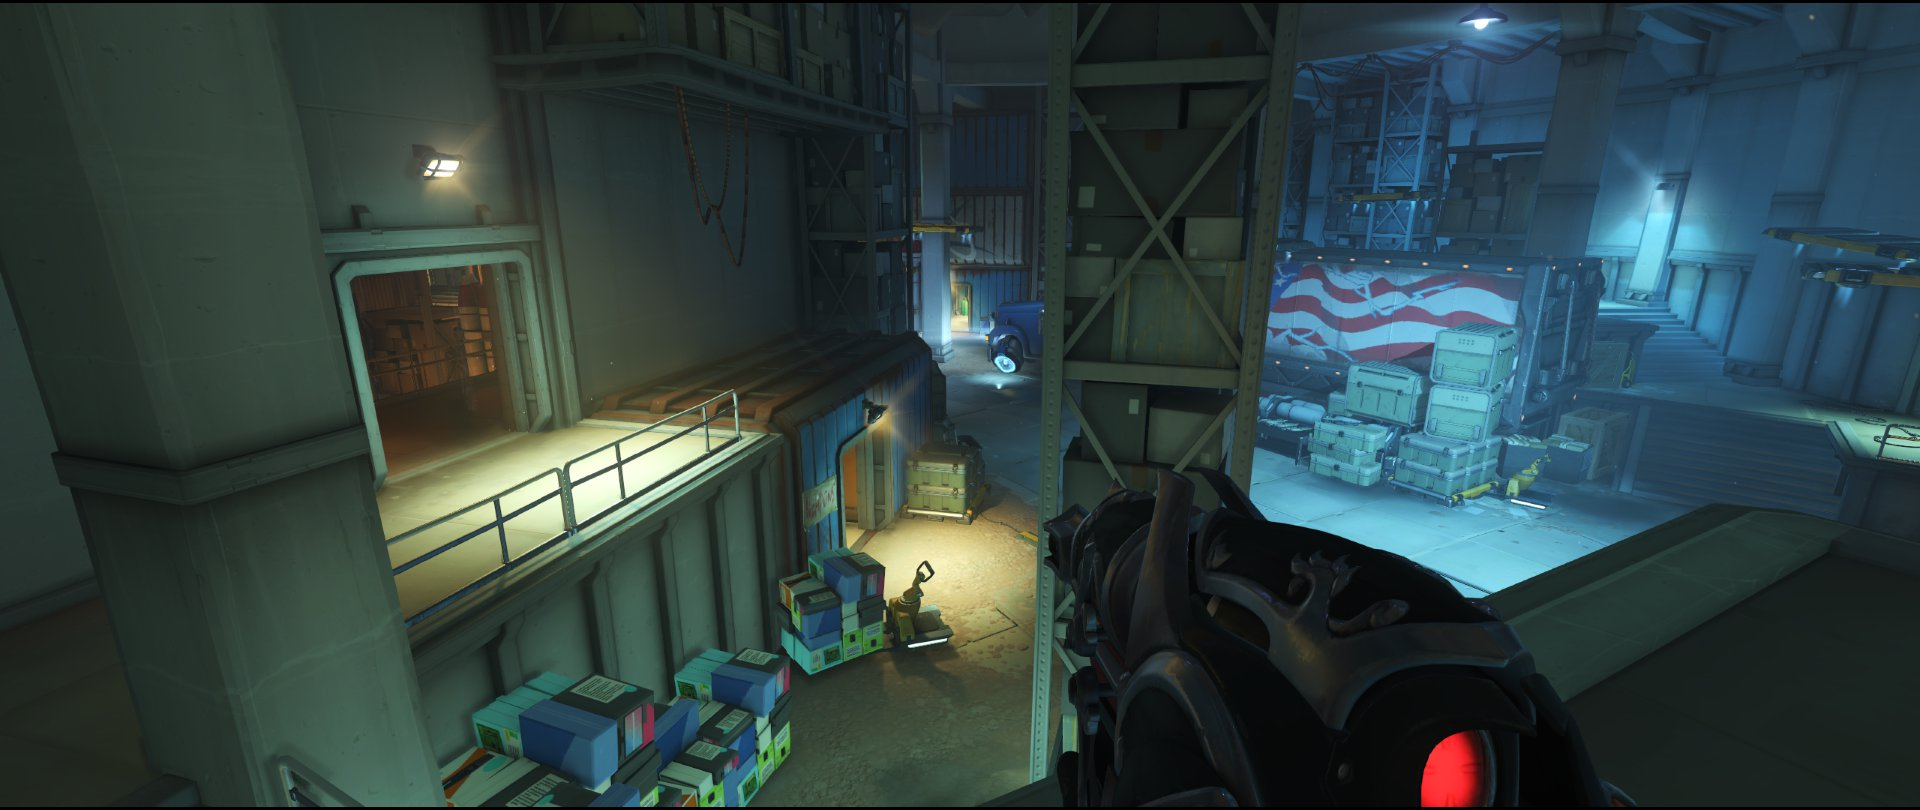 Spawn area high ground one defense sniping spot Widowmaker Route 66.jpg